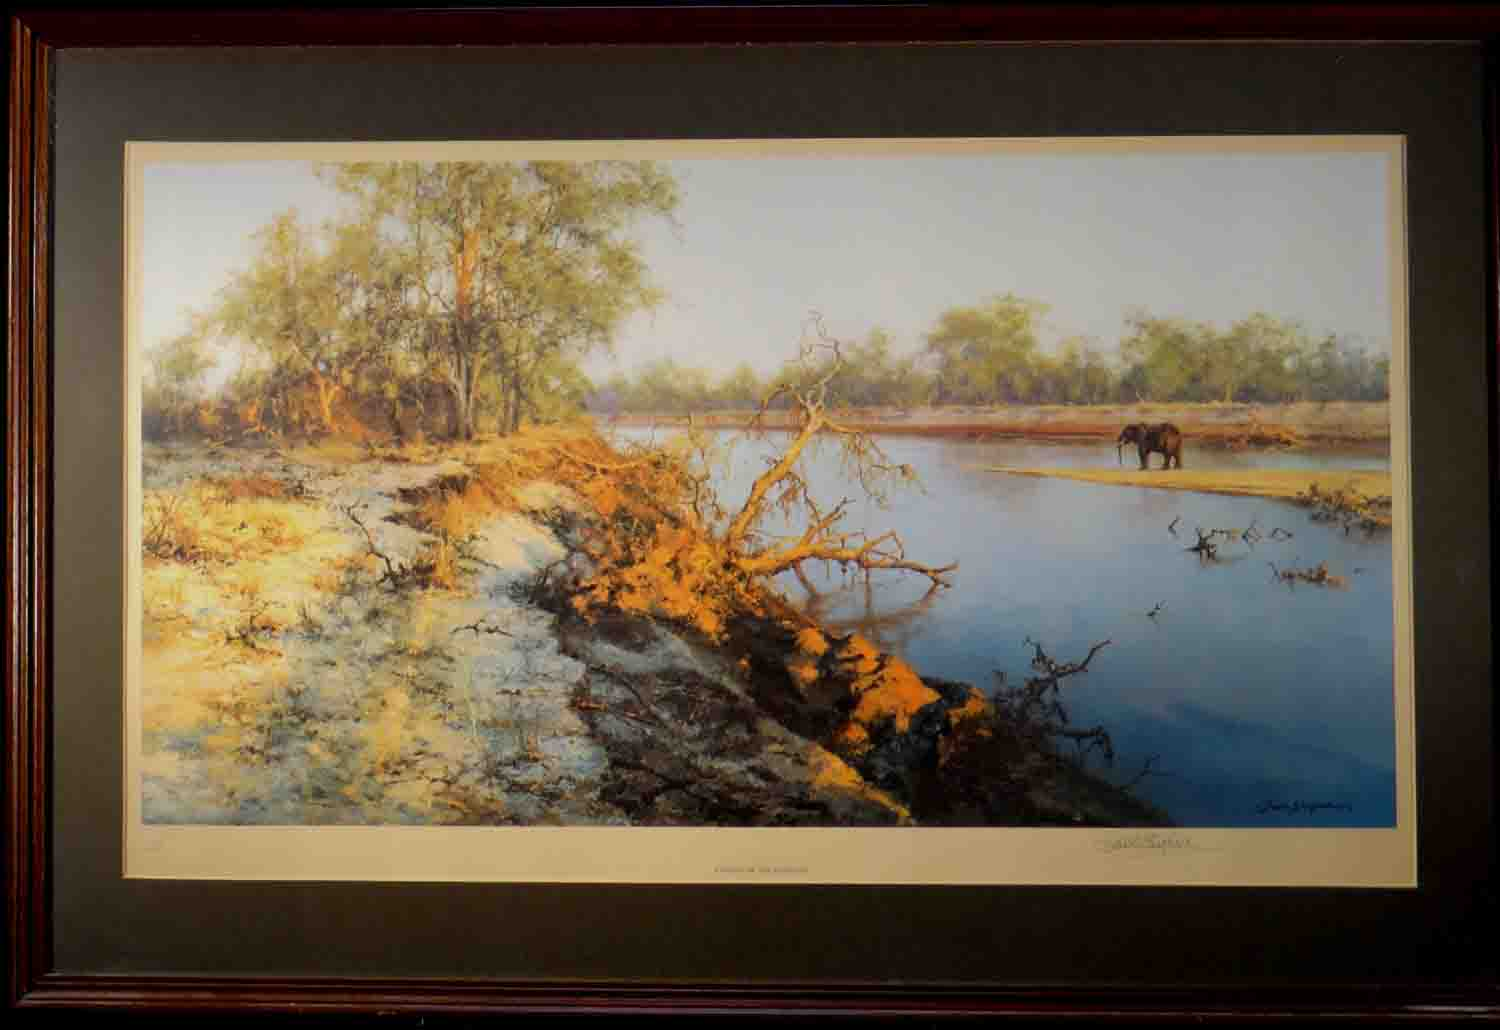 david shepherd, evening of the elephant, signed limited edition print